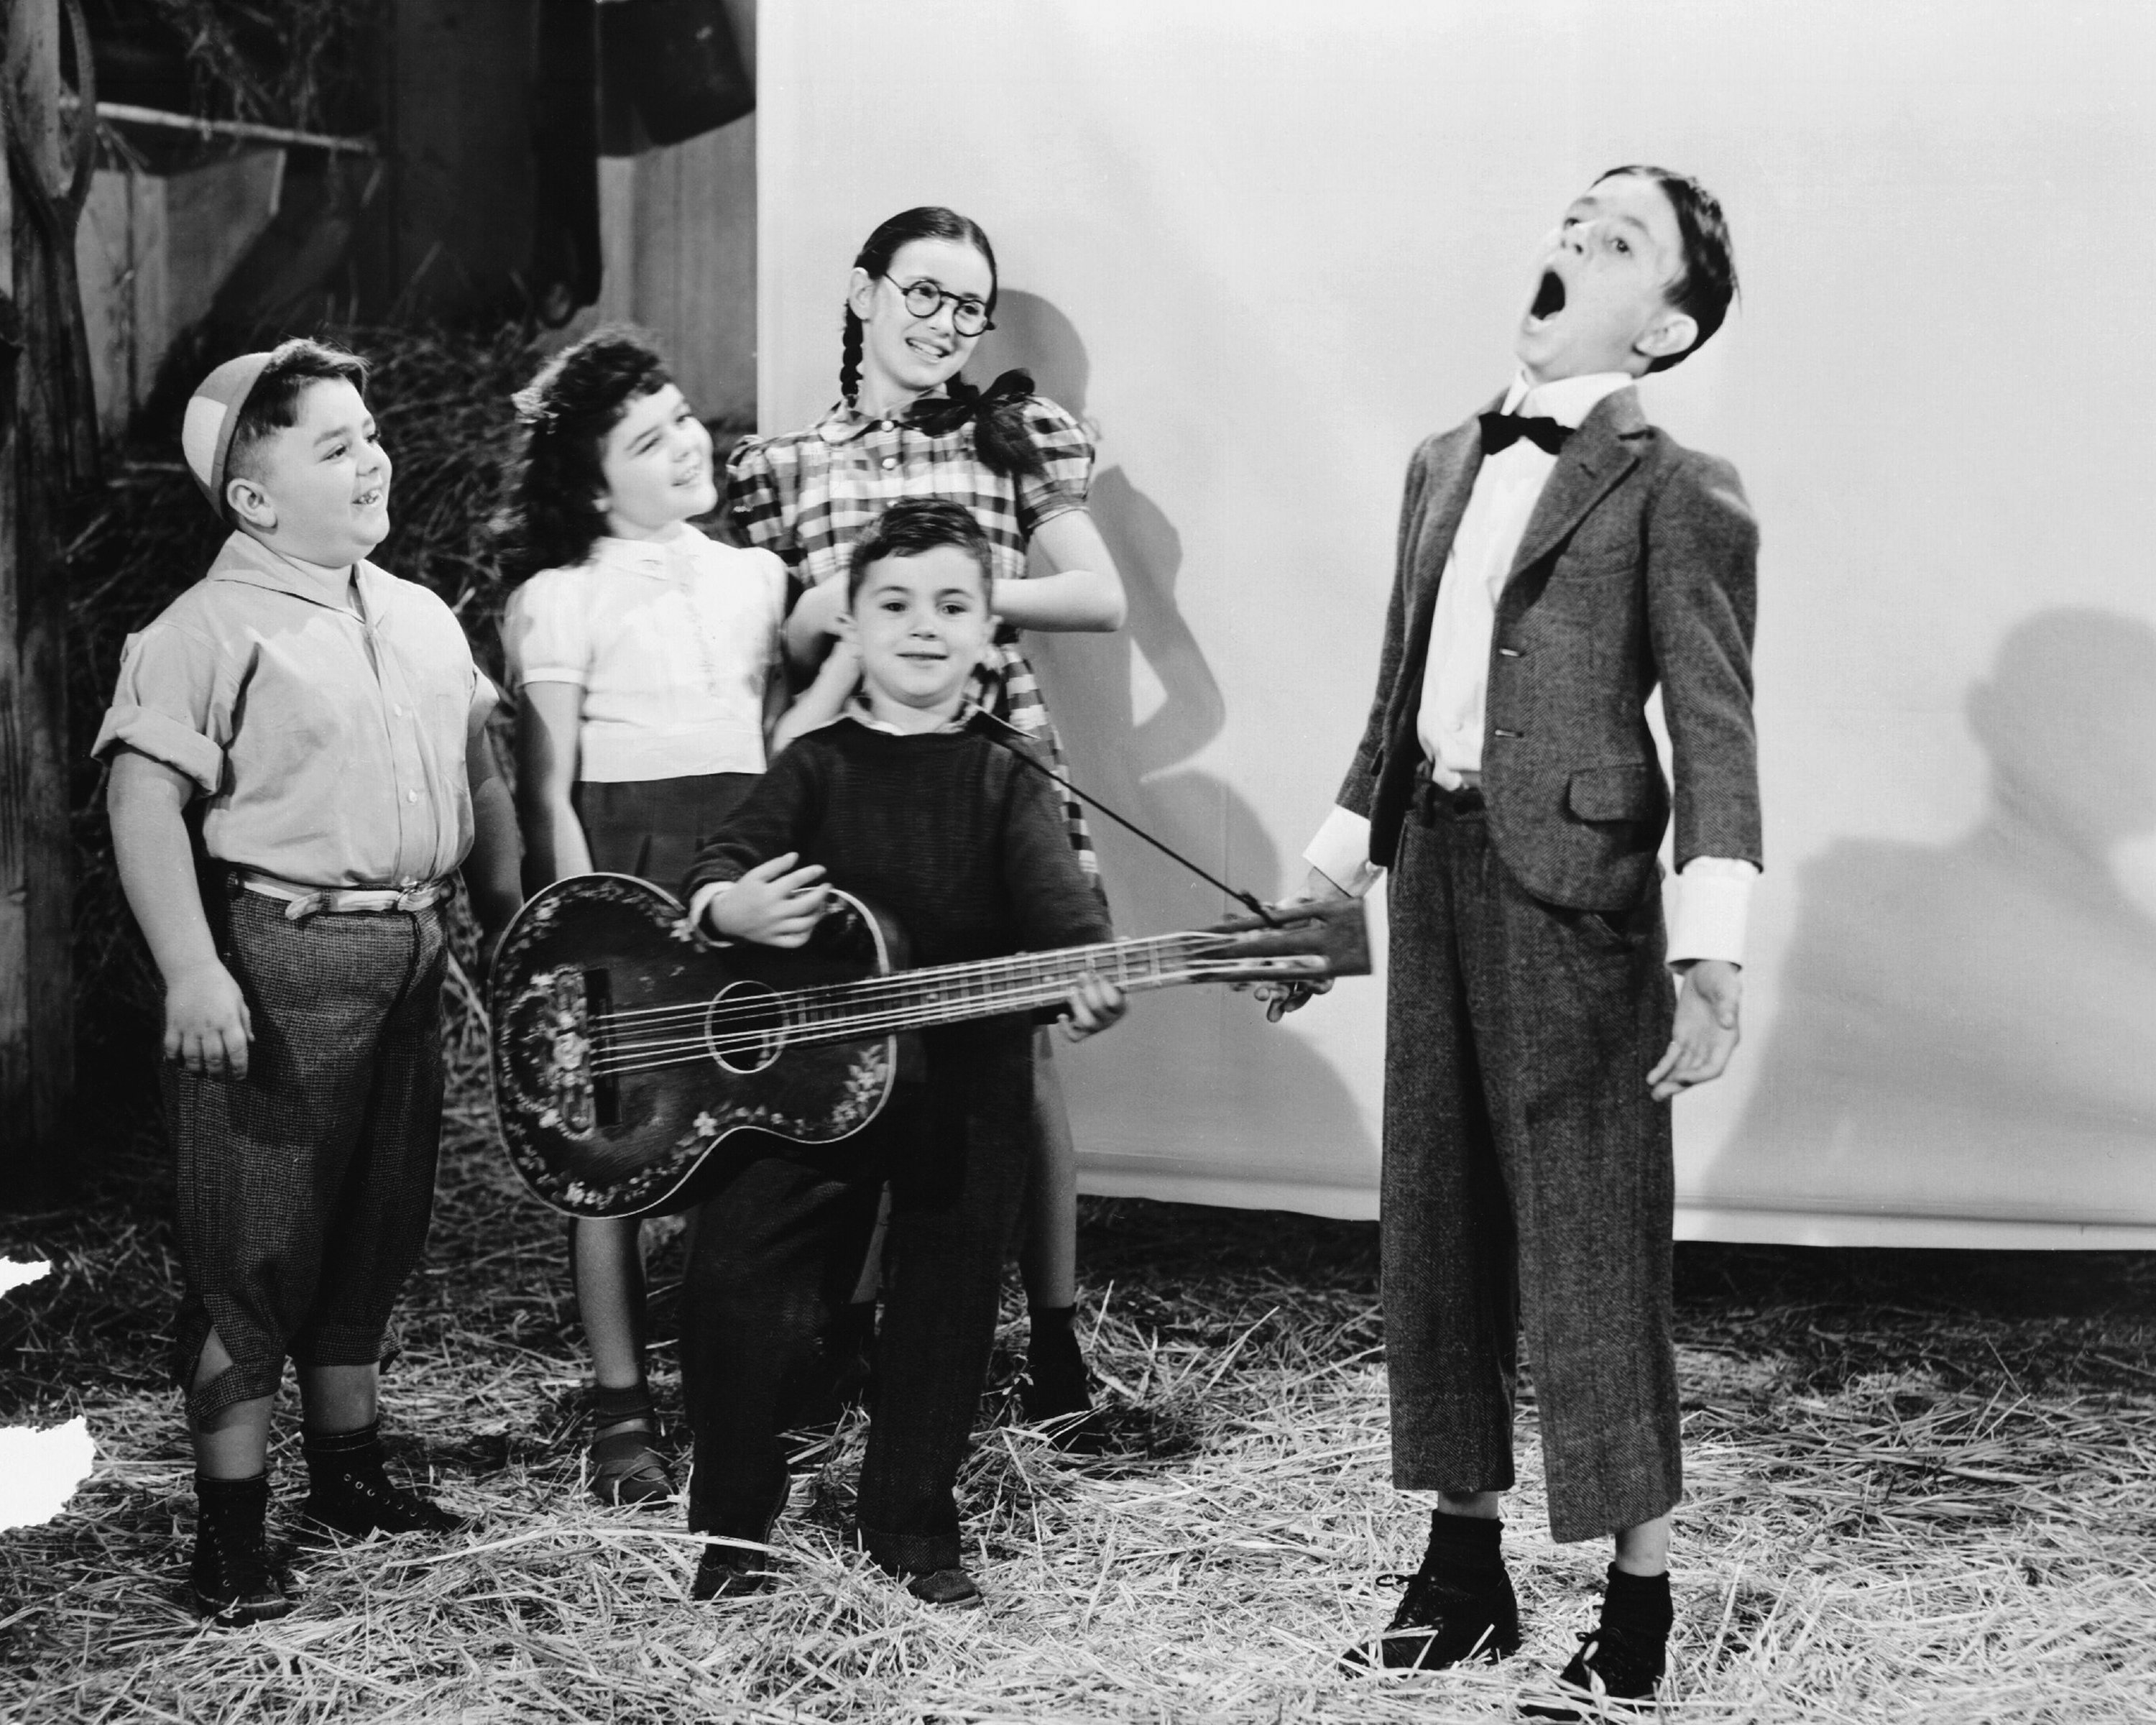 The cast of Our Gang/The Little Rascals singing, circa 1930 | Photo: Getty Images